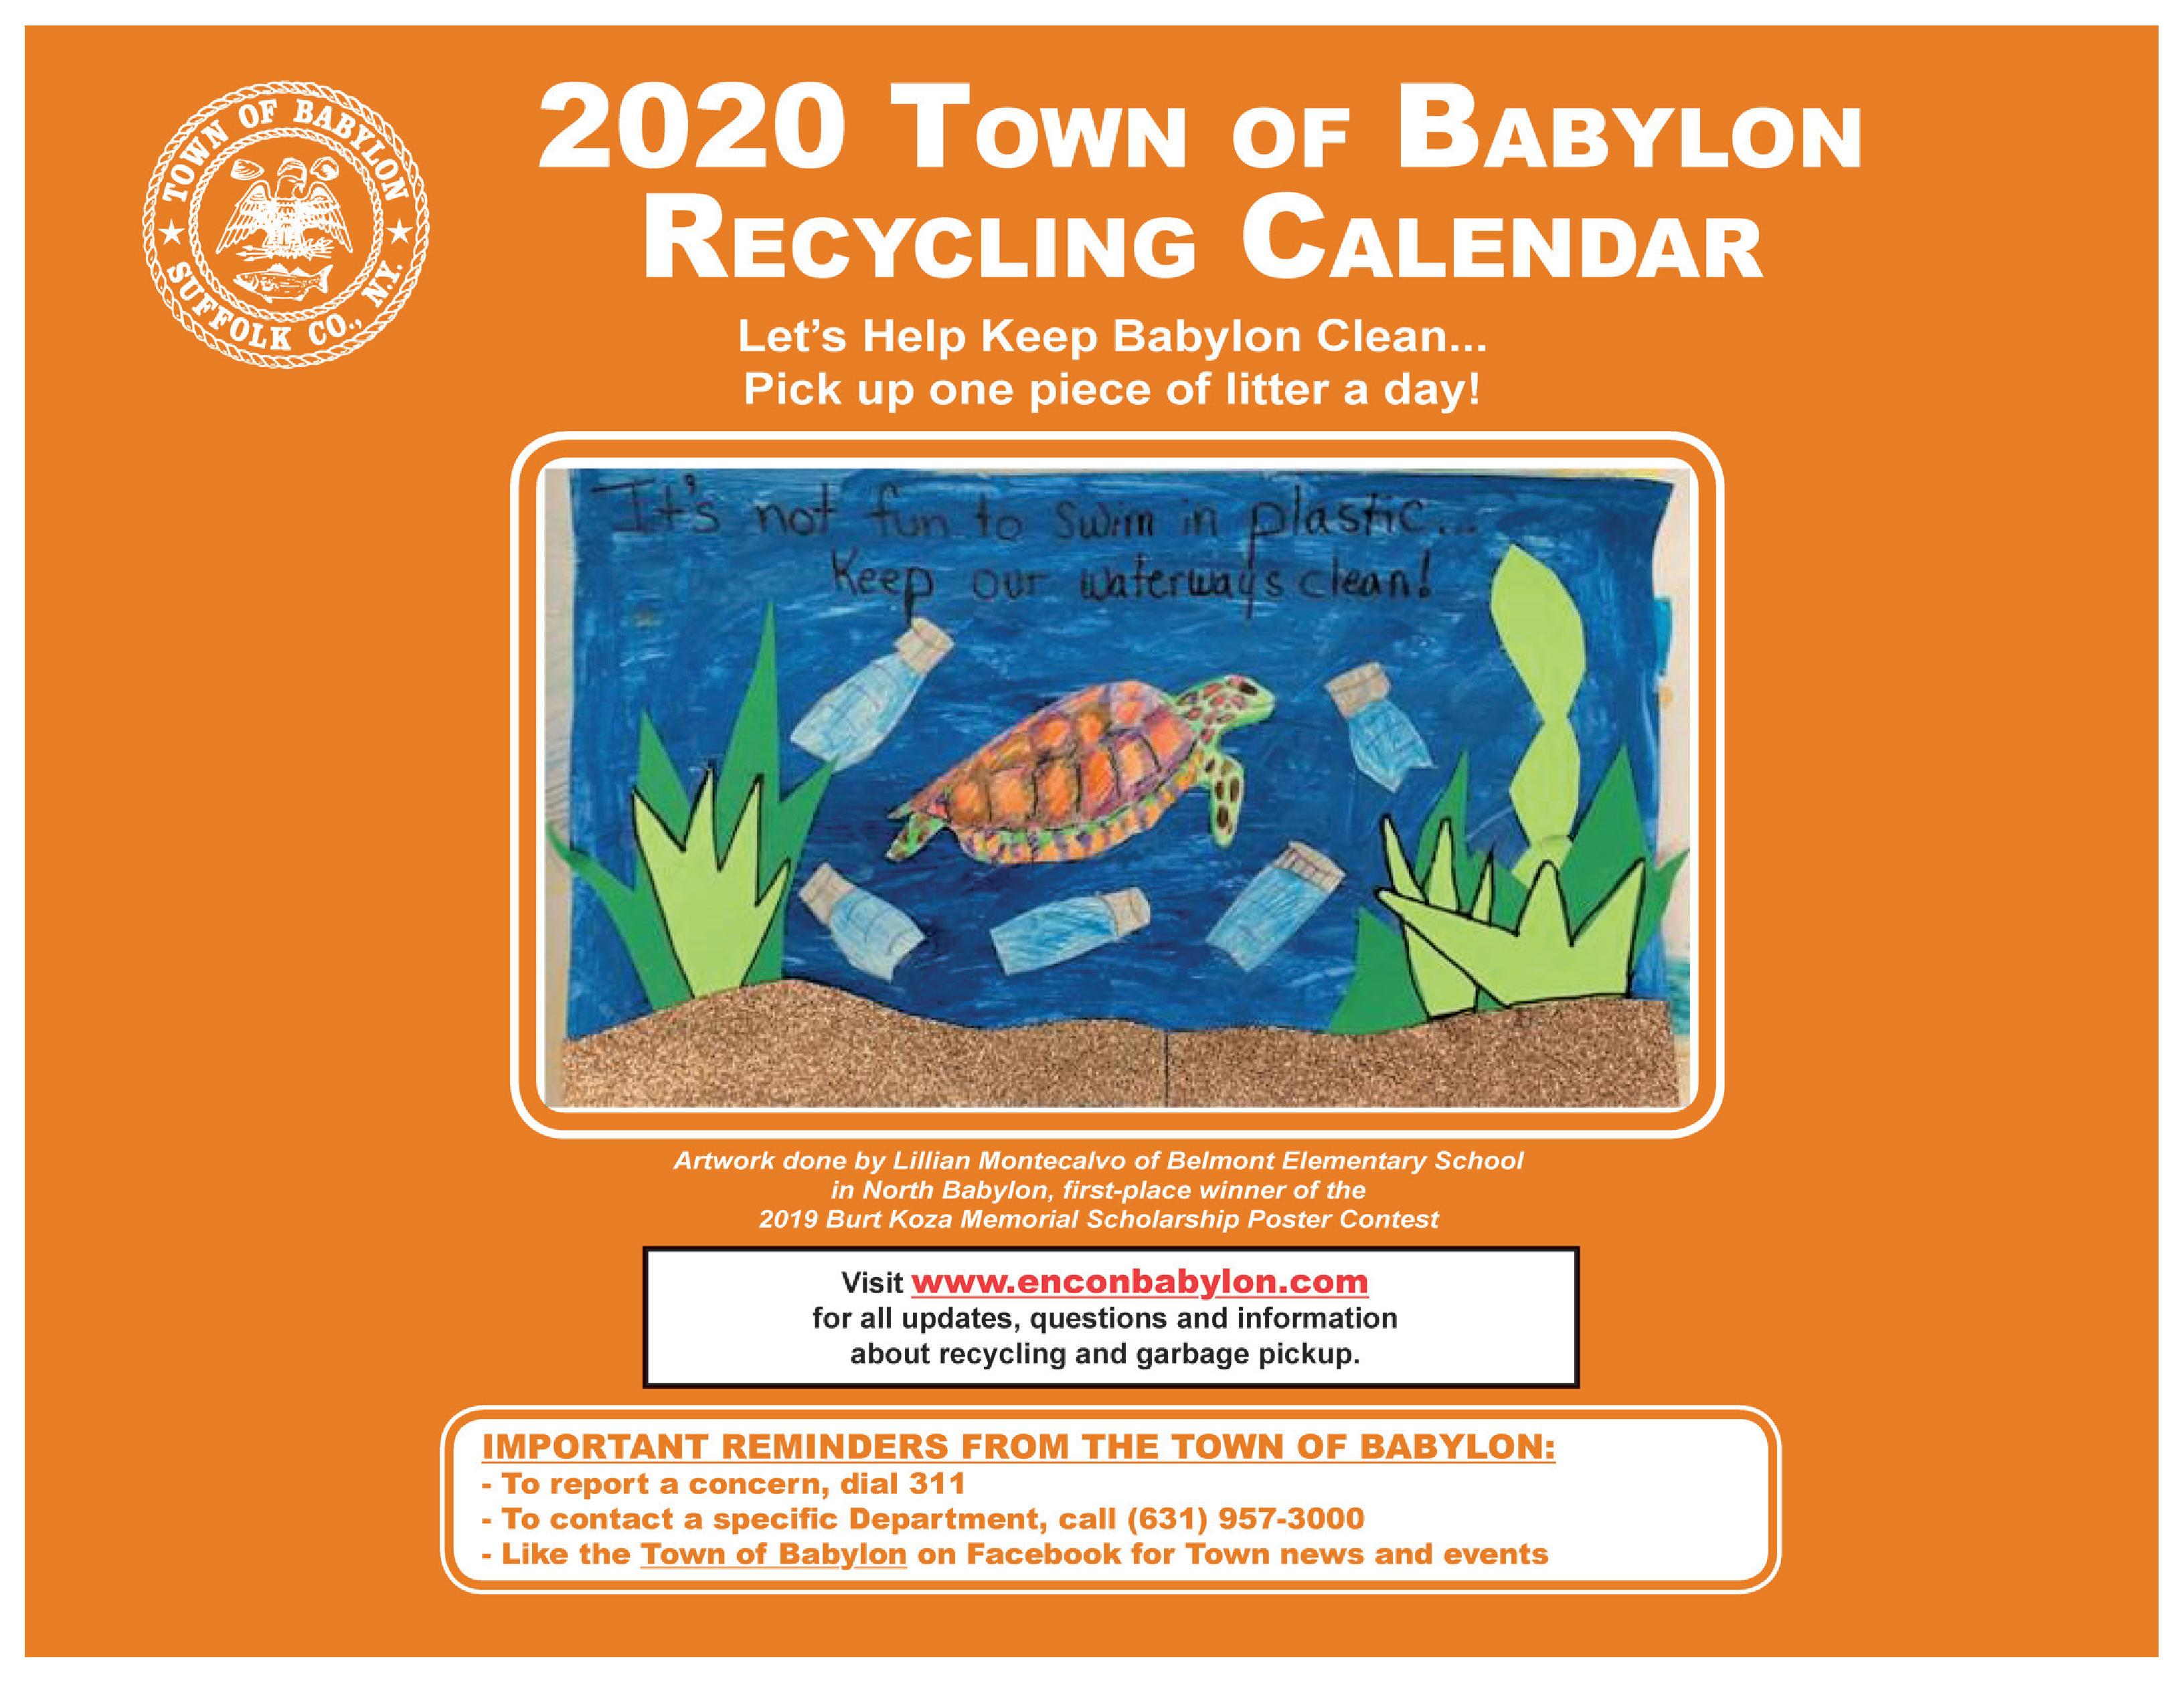 2020 Recycling Calendar | Babylon, NY   Official Website